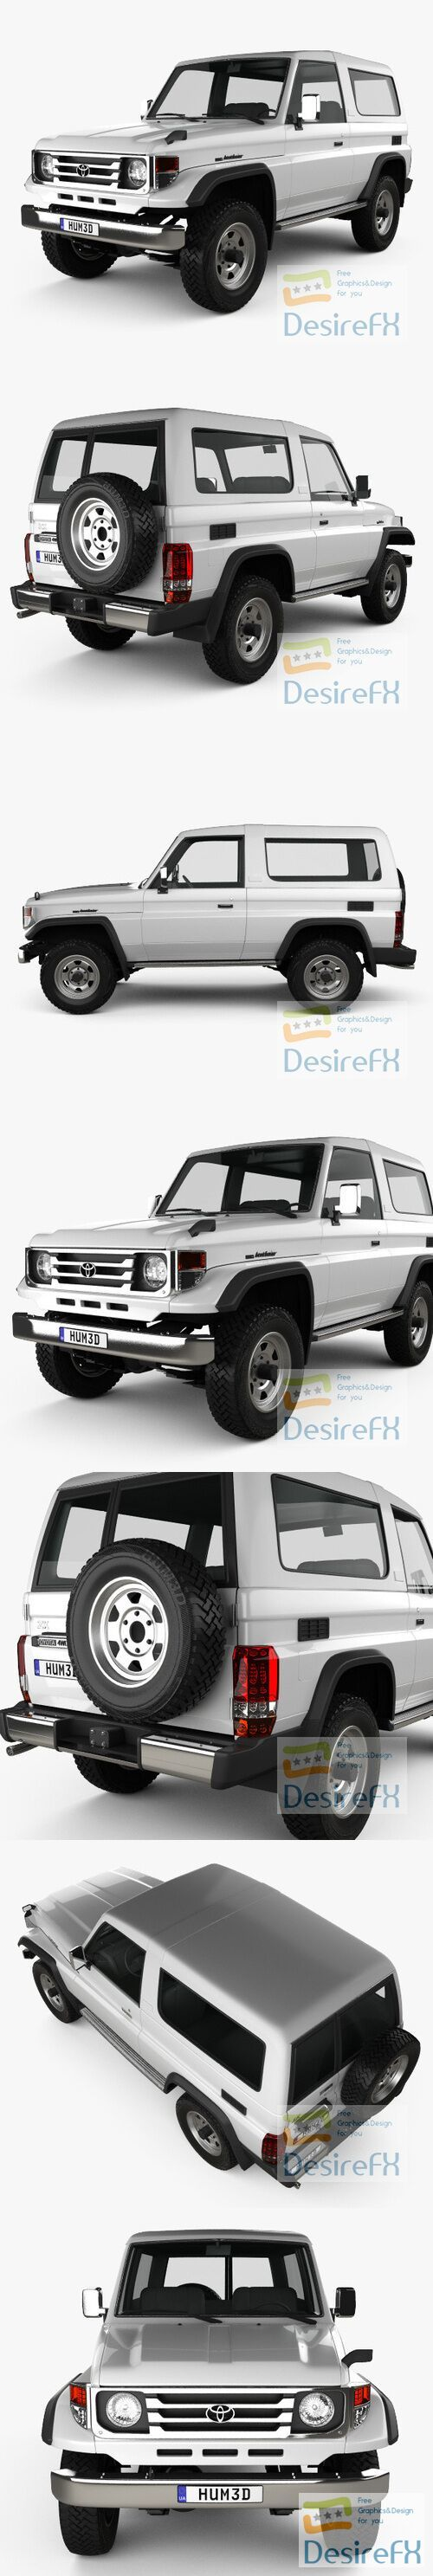 Toyota Land Cruiser J70 3-door 1990 3D Model